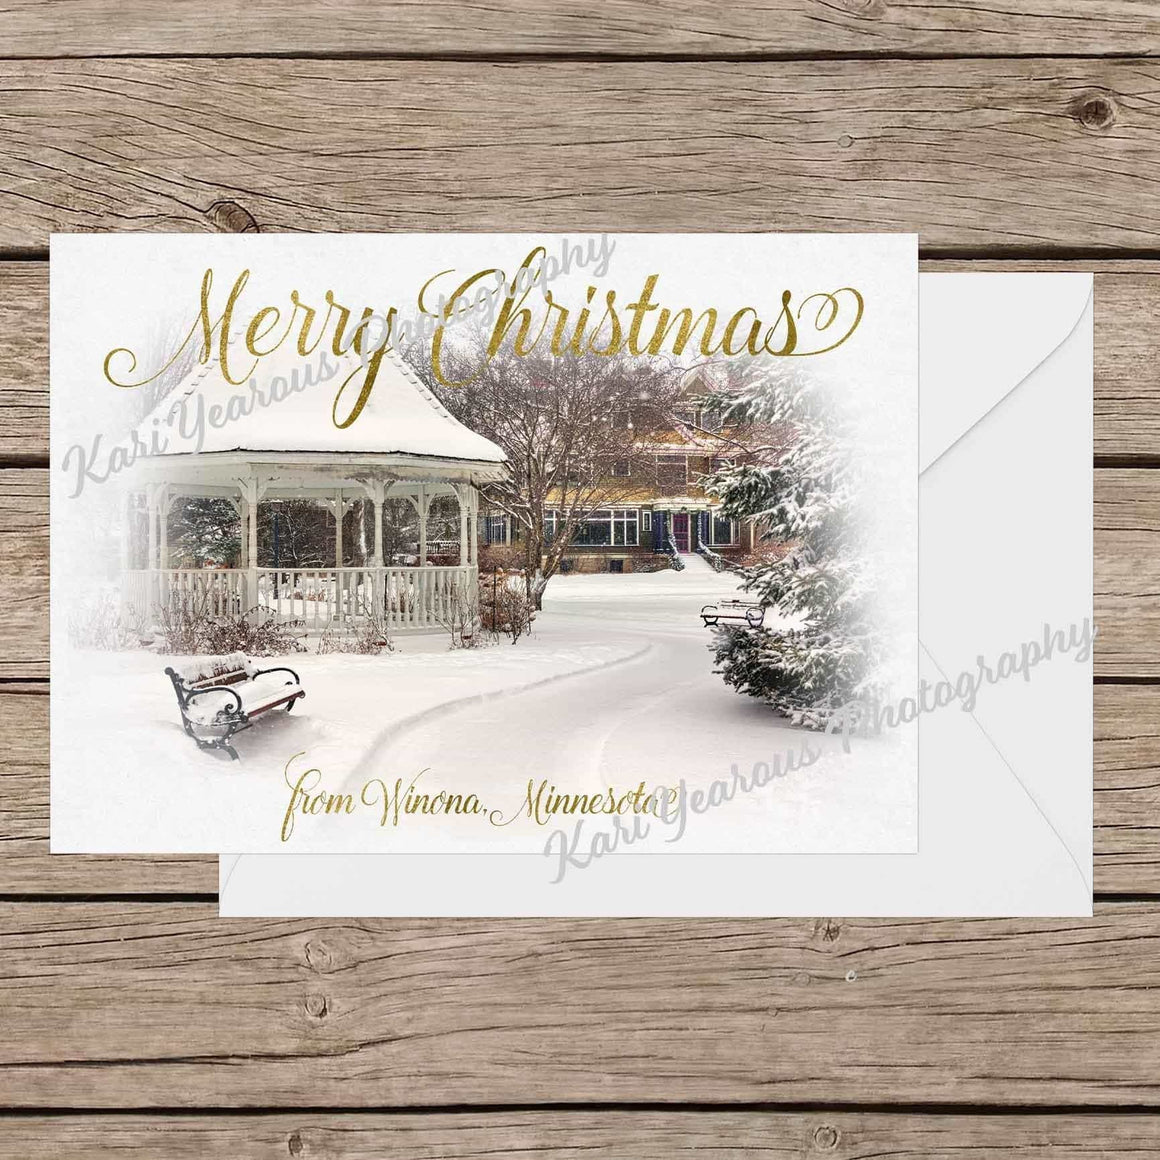 Card (Flat) Merry Christmas From Winona Minnesota, 5 pk - Kari Yearous Photography